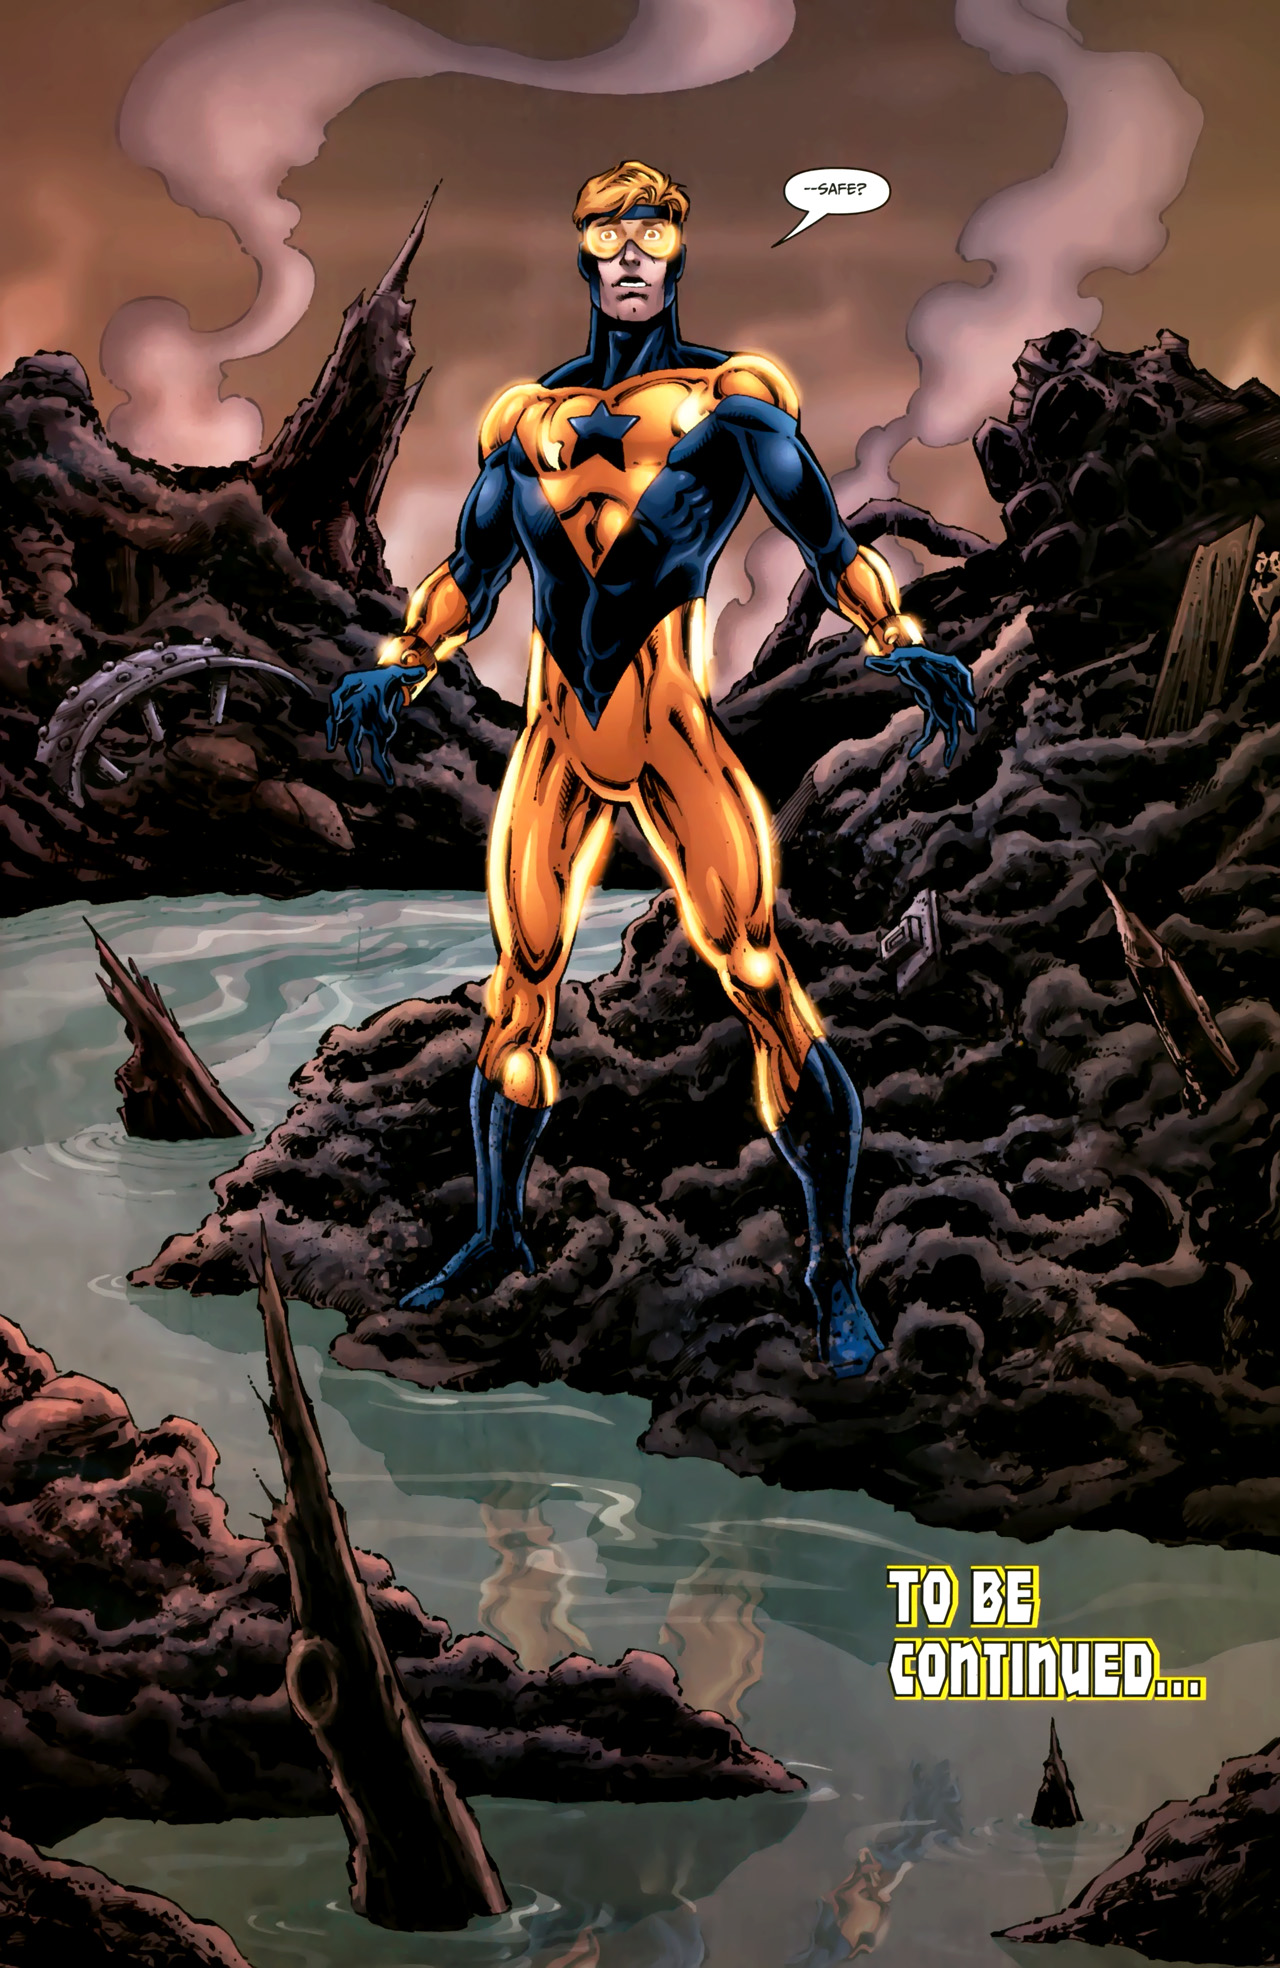 booster gold might not be safe